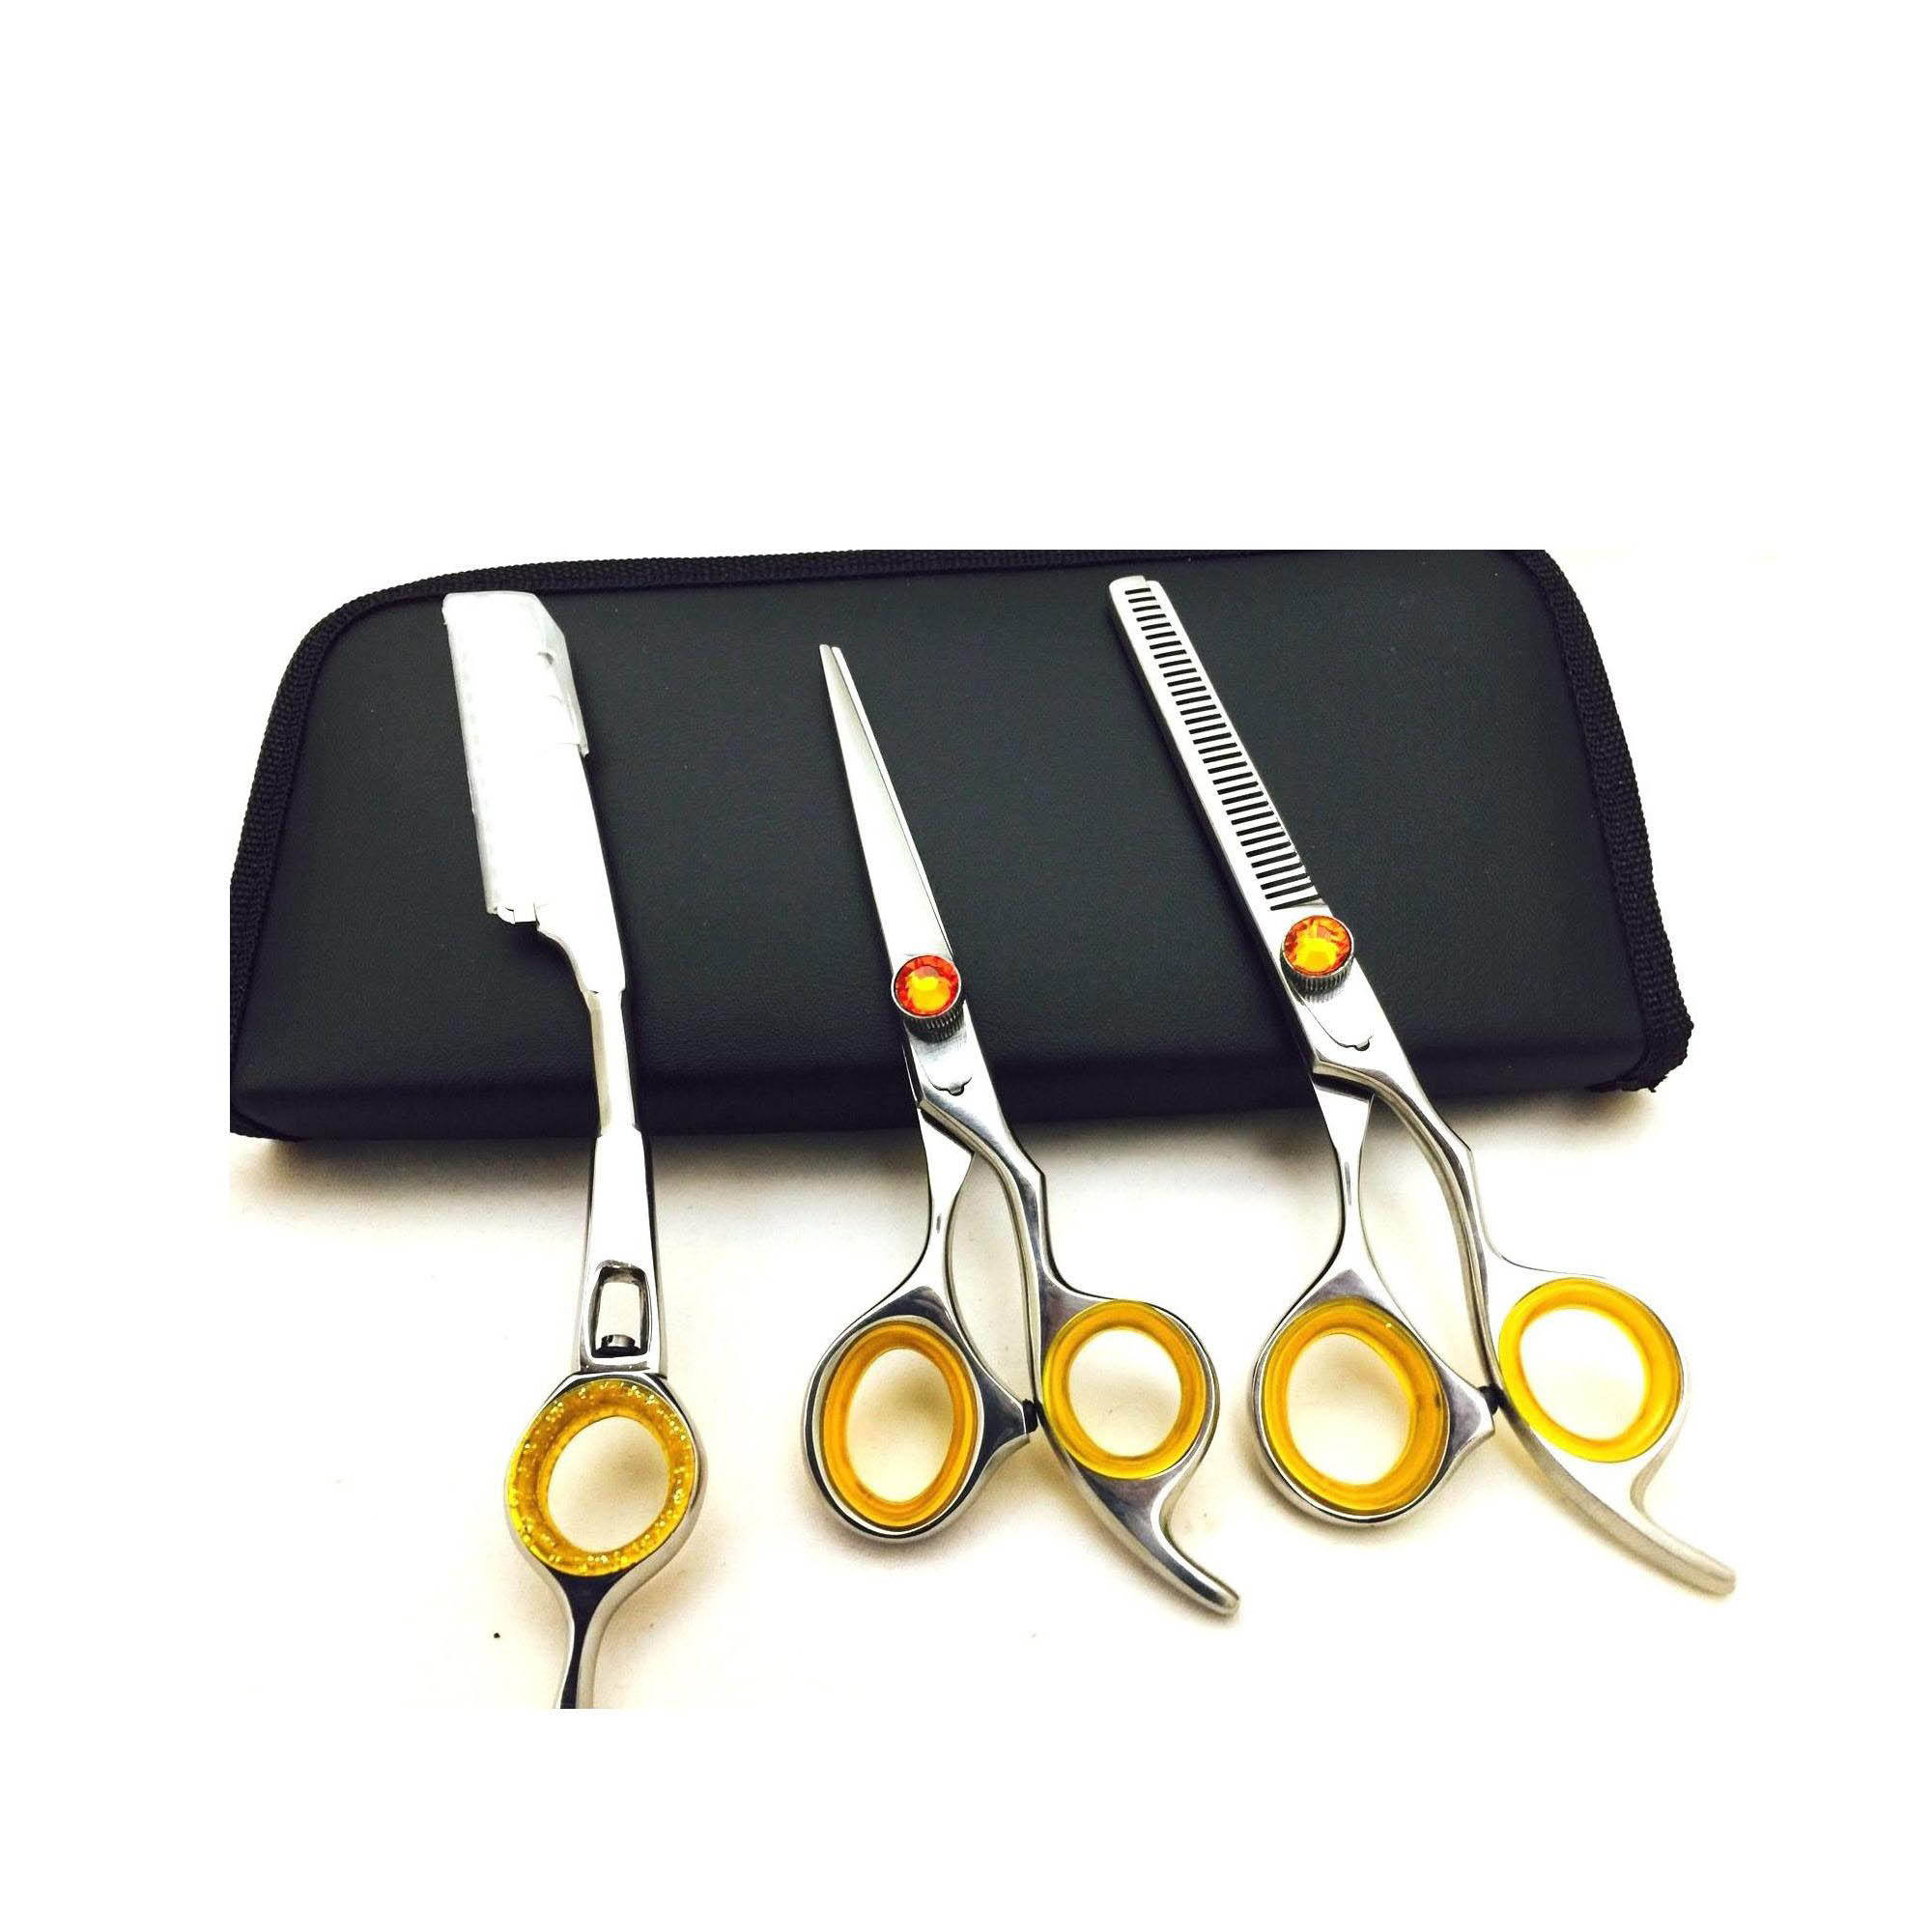 3 Pieces Barber Scissor Set Hair Scissor For Salon Cutting Scissor